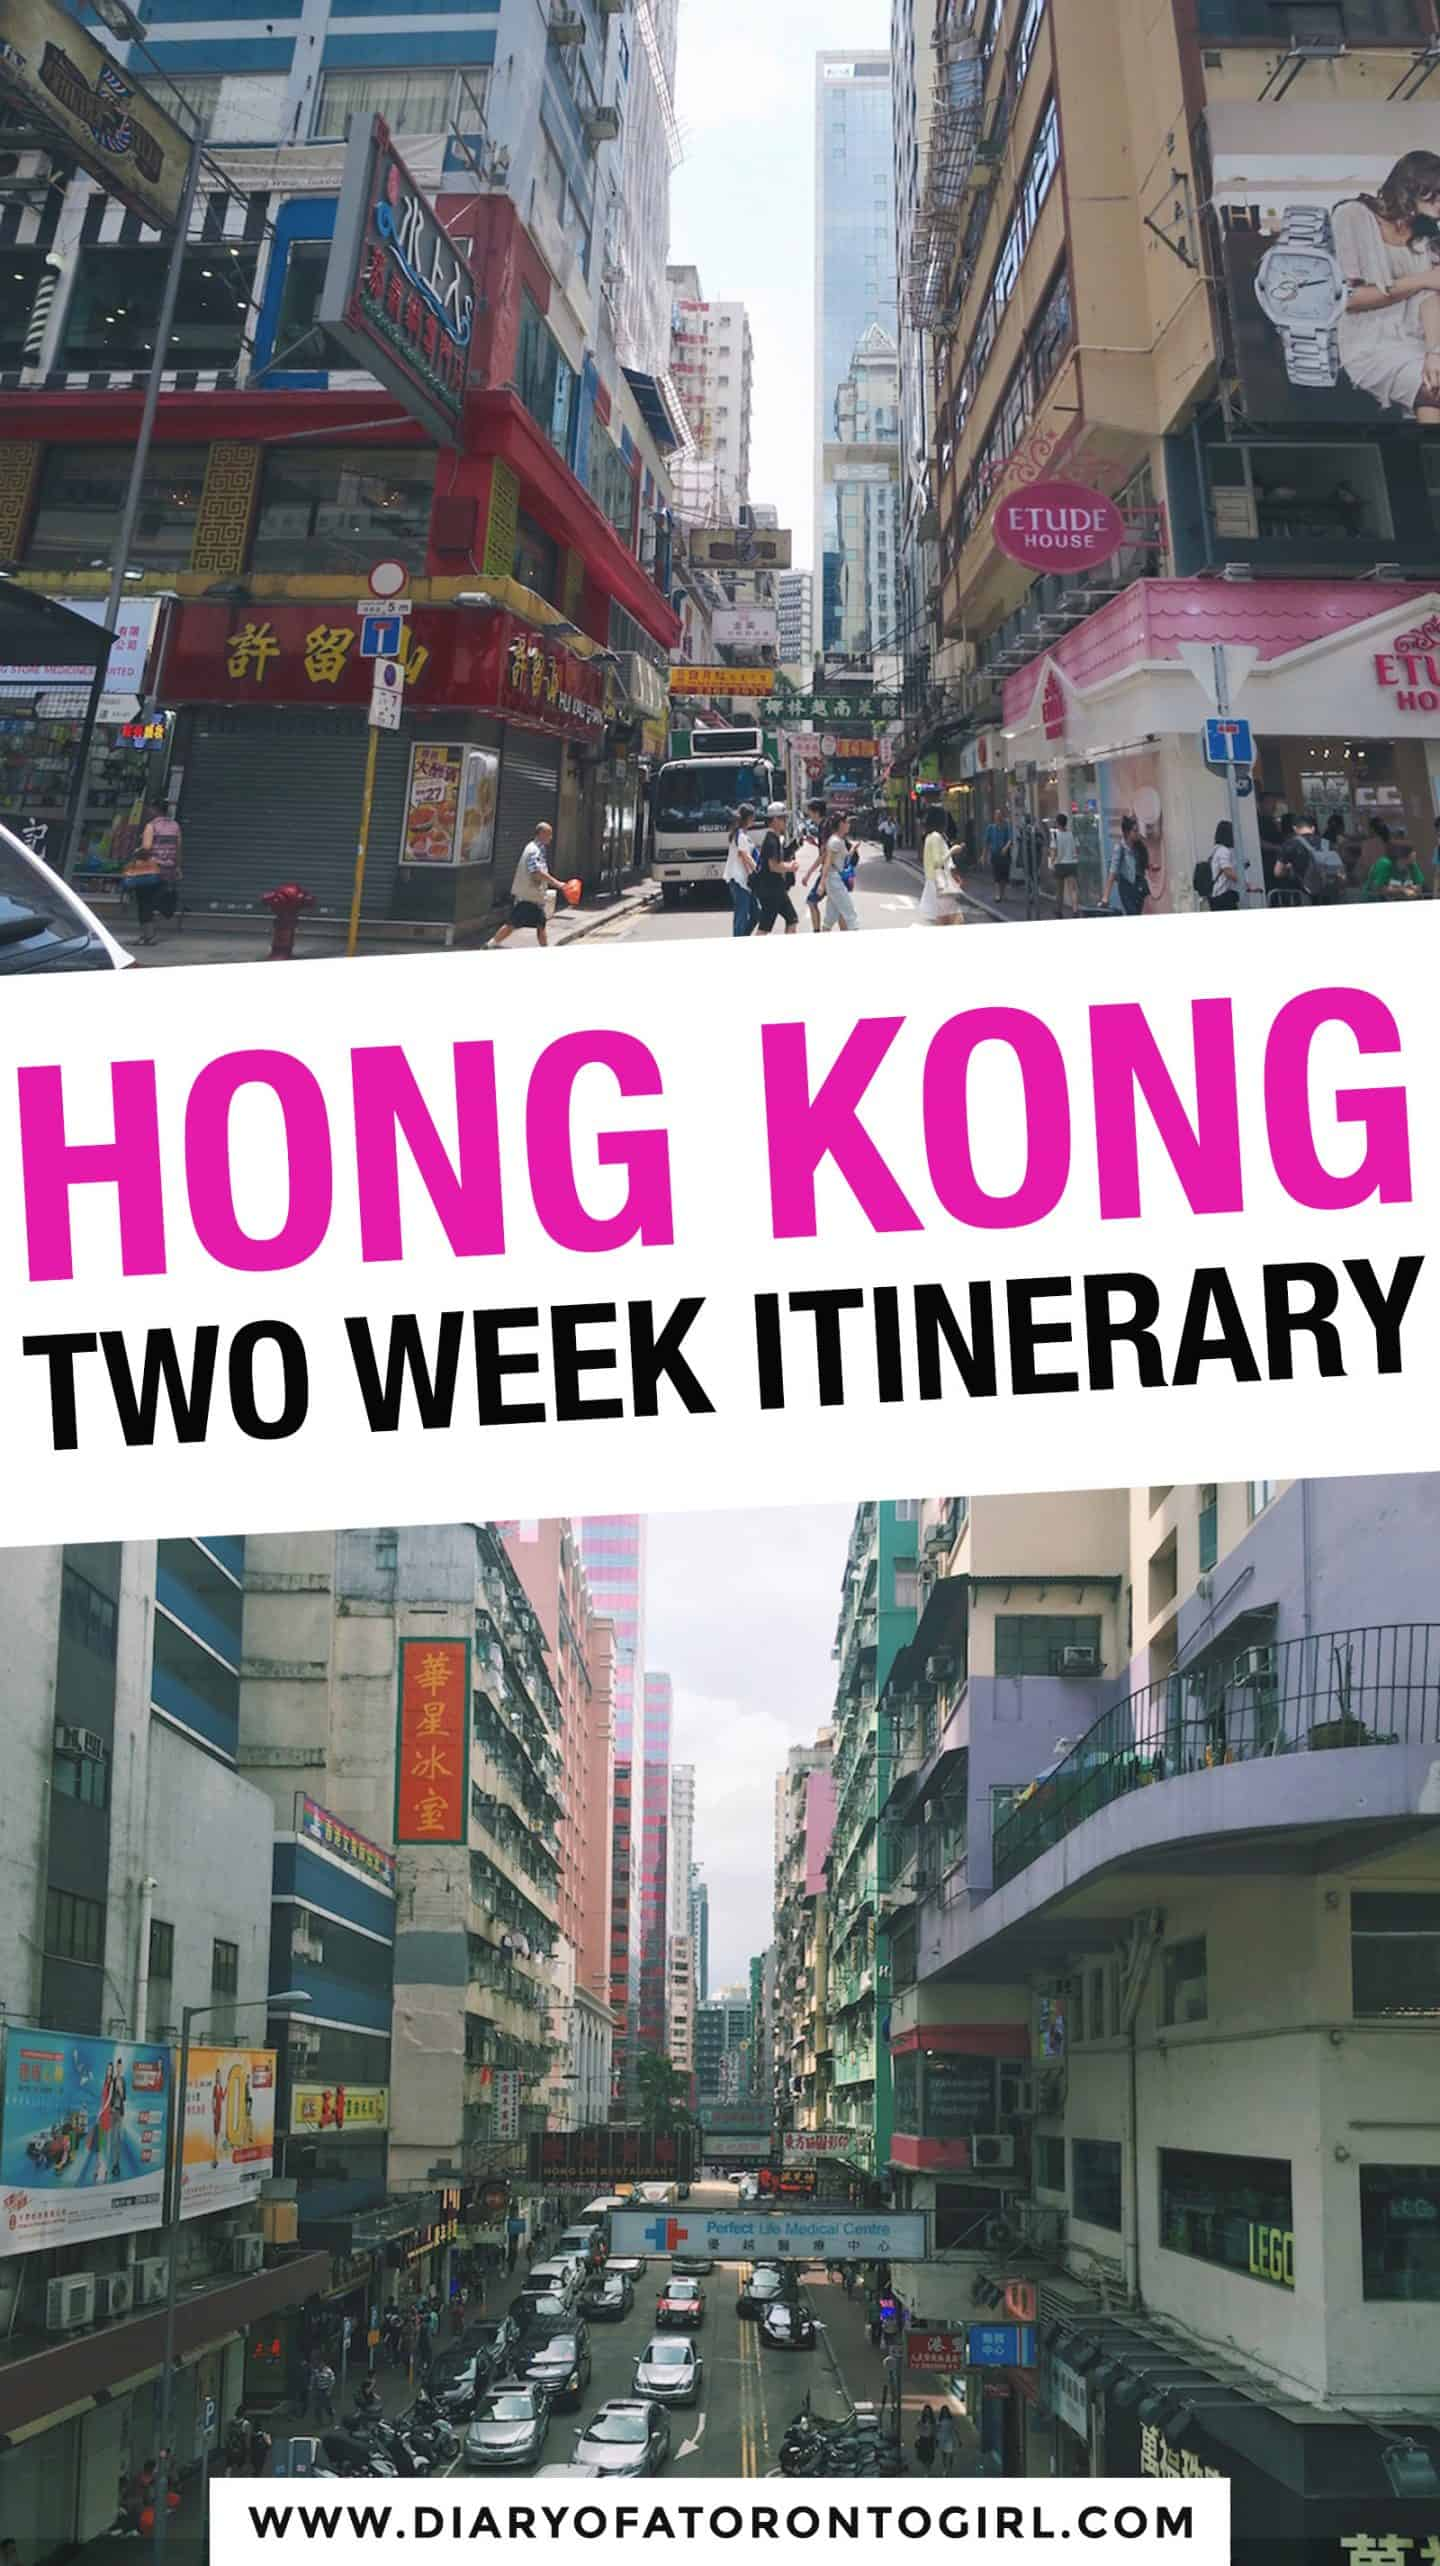 Planning a visit to Hong Kong? Here's the ultimate travel itinerary and guide featuring the best things to do and see during your trip!